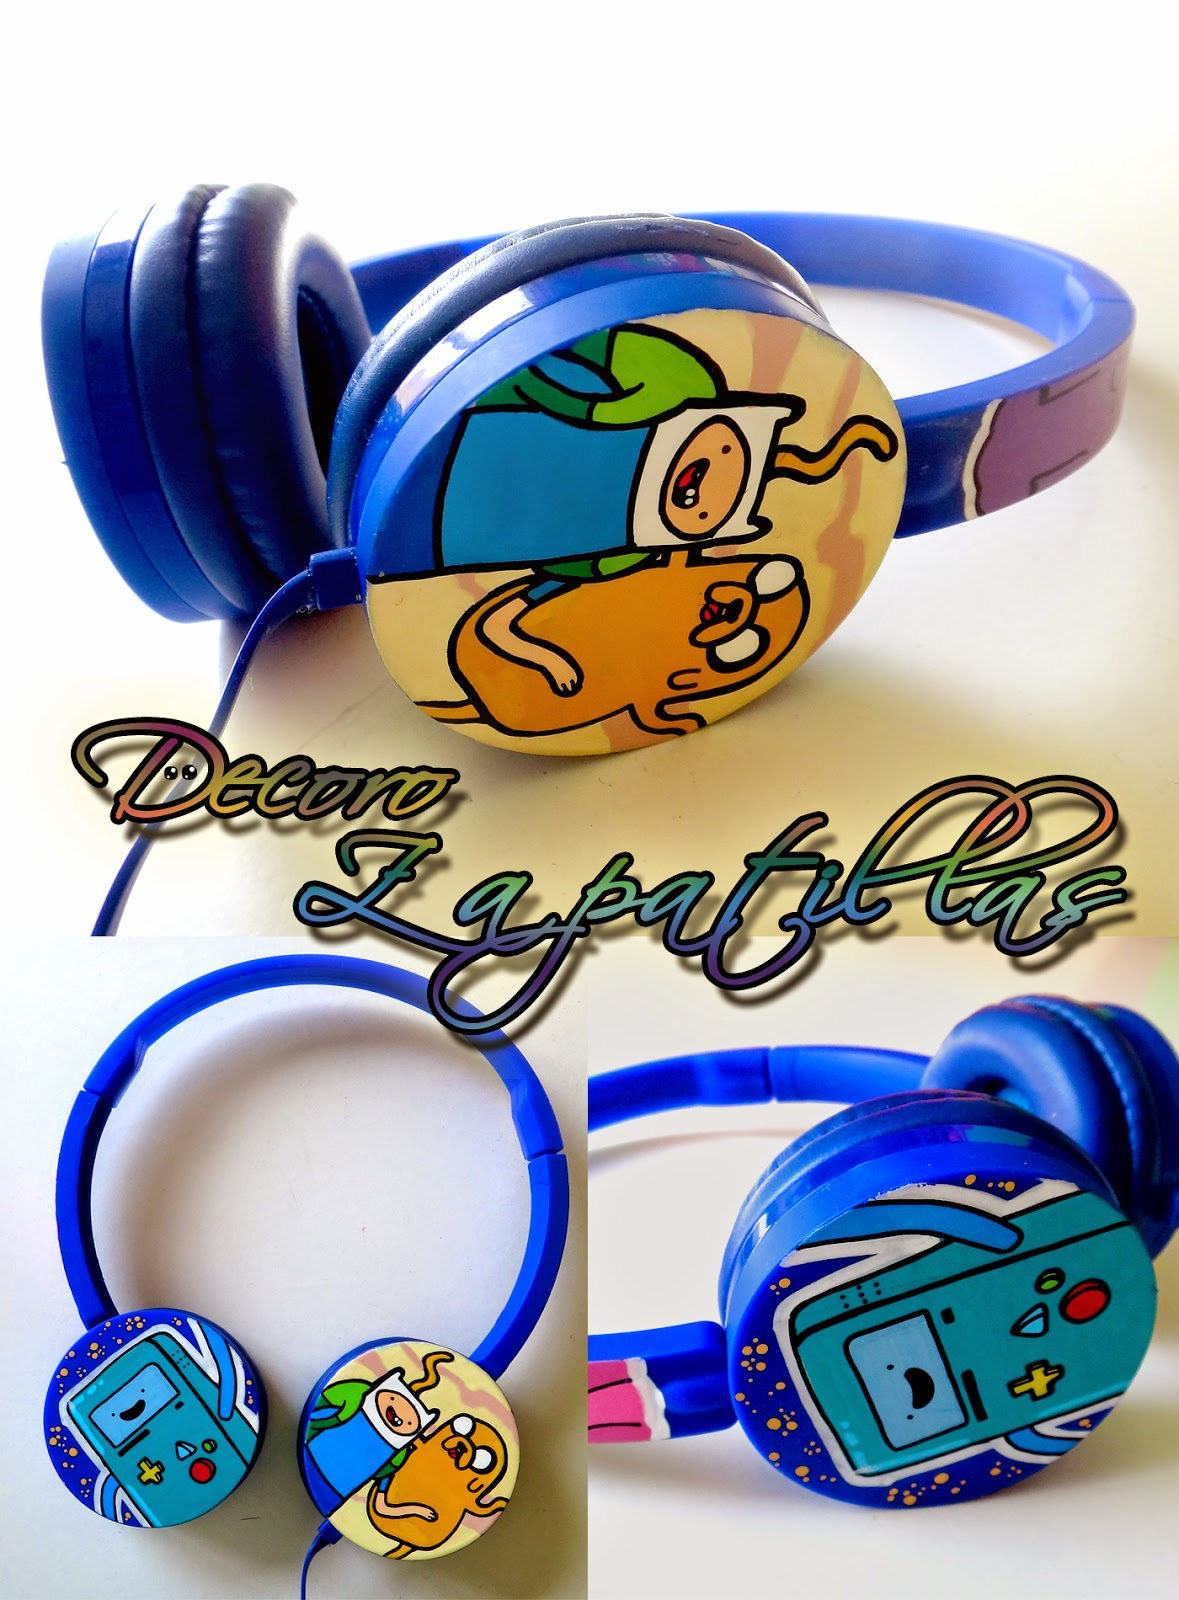 Adventure Time custom headphones handmade